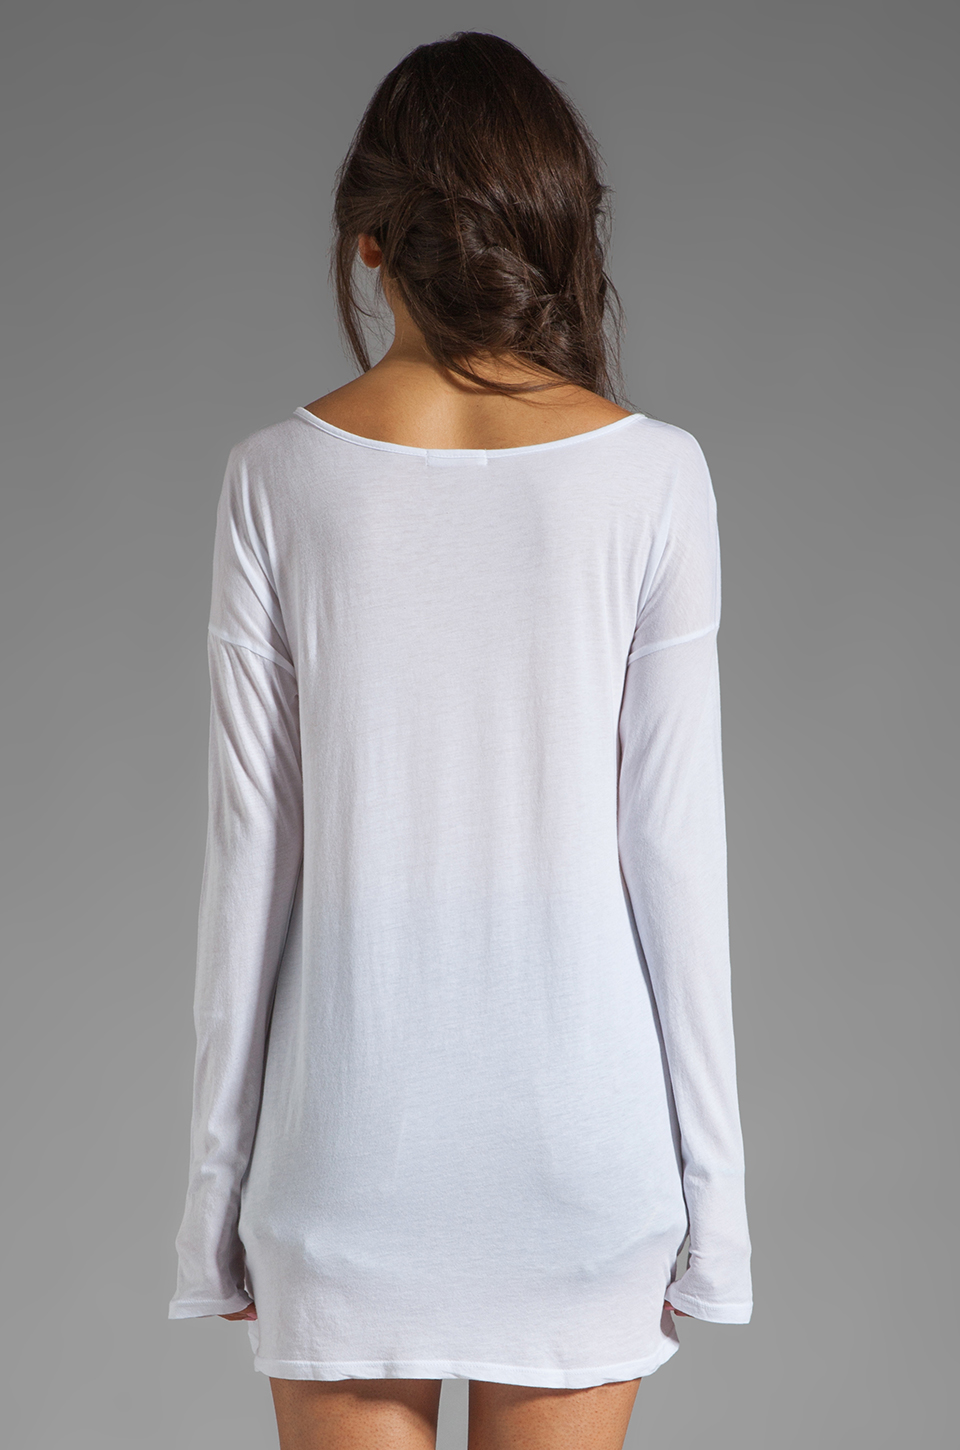 LA Made Supima Long Sleeve Boat Neck Tee in White